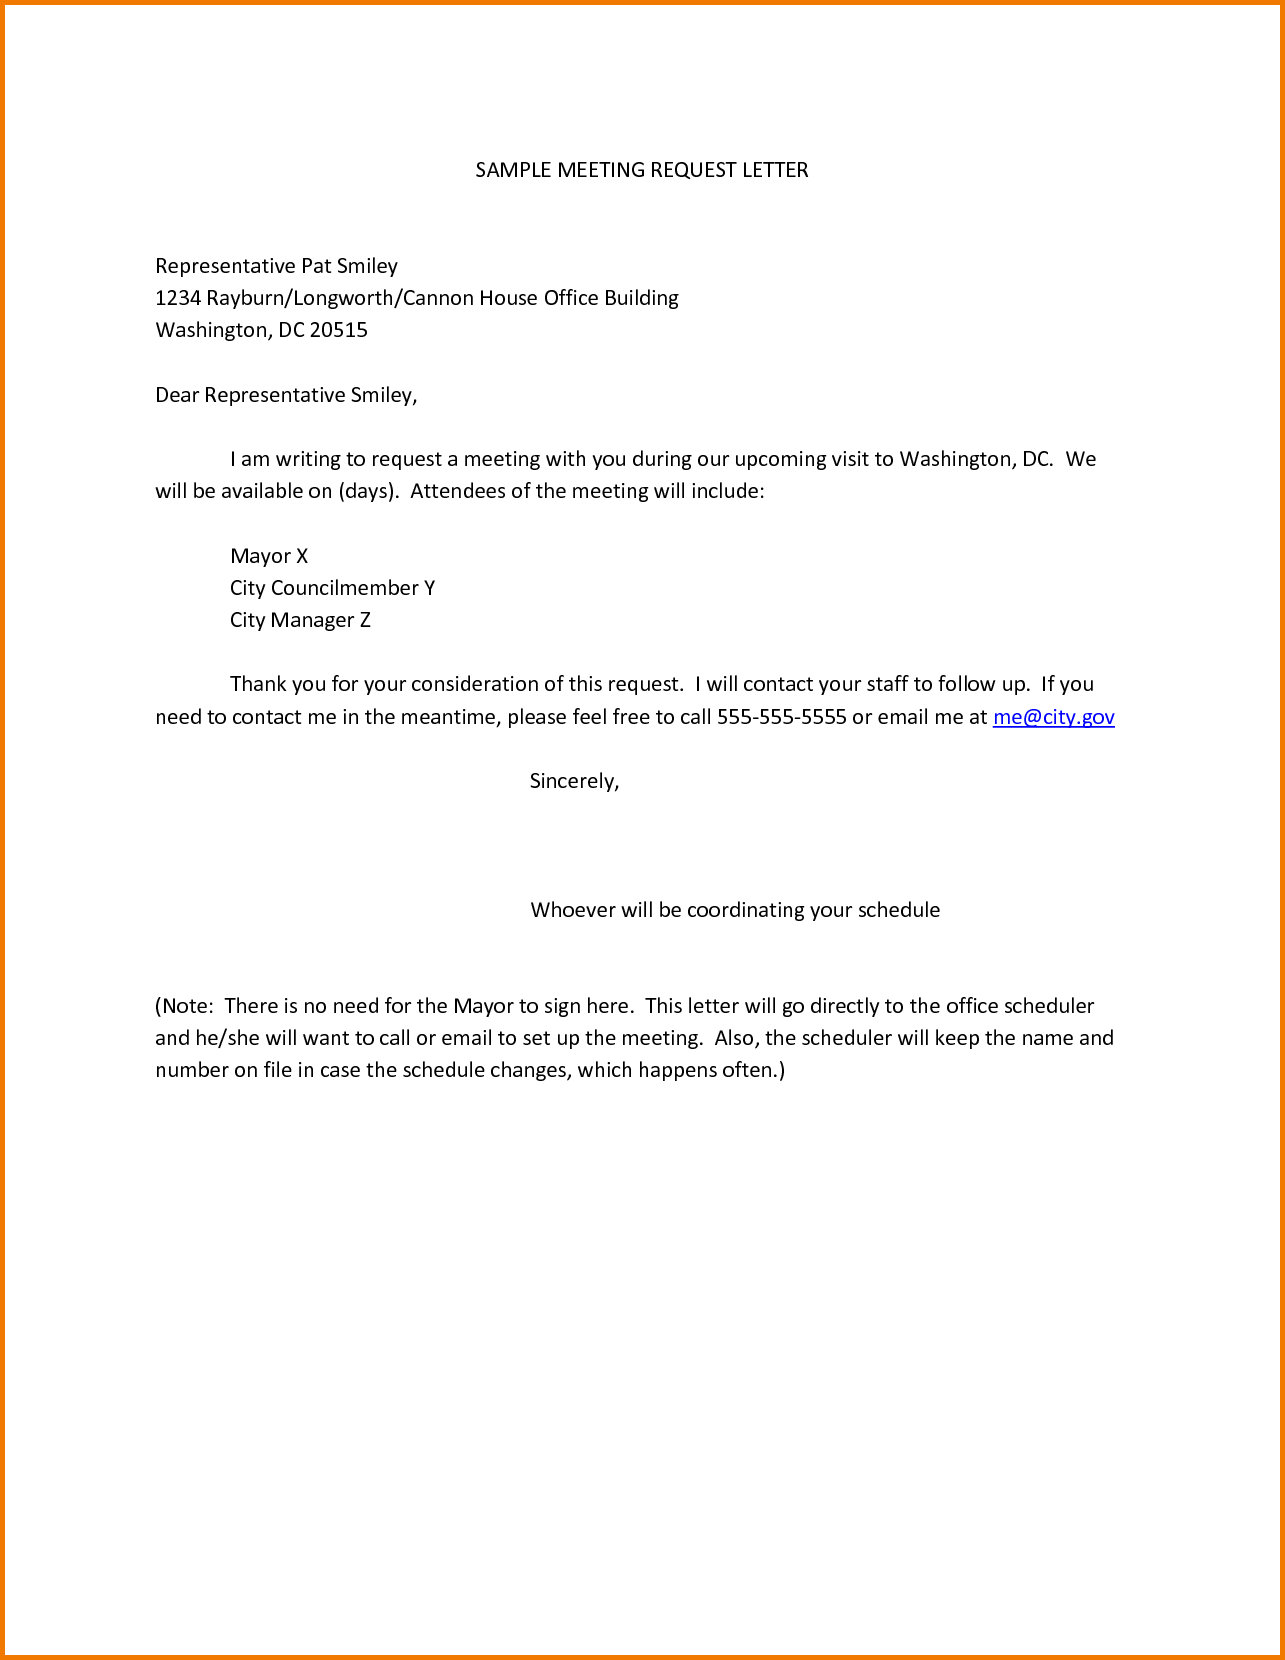 10 Day Demand Letter Template - Sample Meeting Request Letter Representative Pat Smiley Rayburn